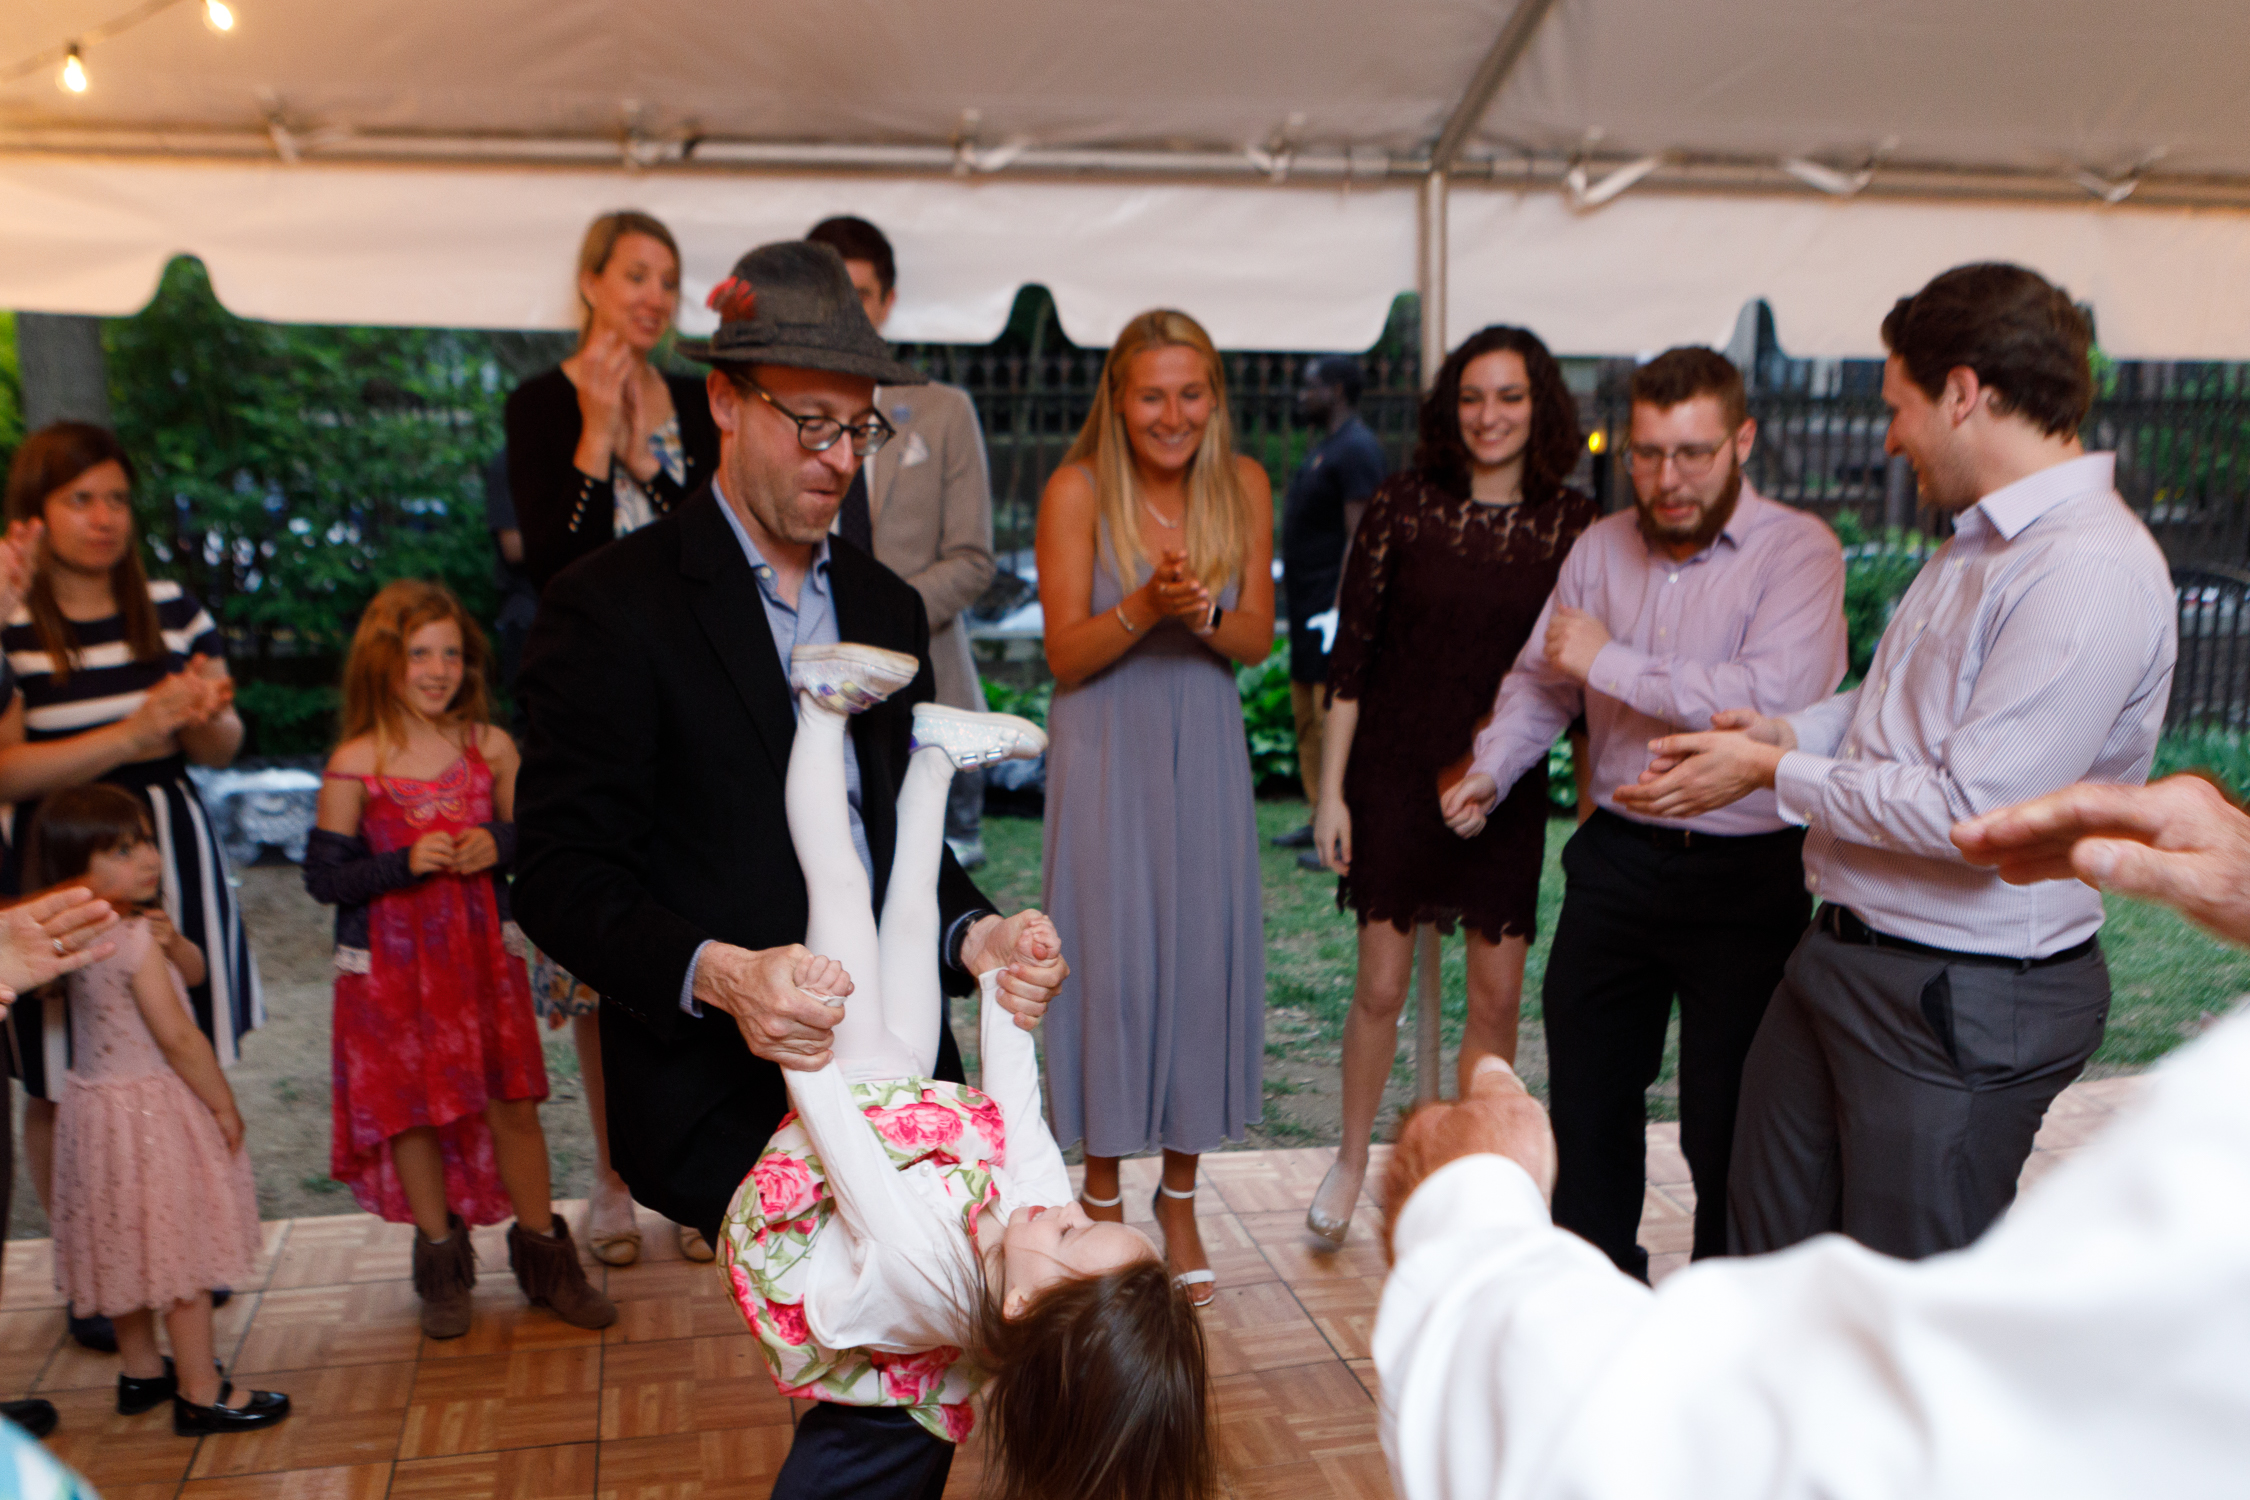 Brooklyn Wedding Photographer _ Jonathan Heisler _ 5112019 _031.jpg